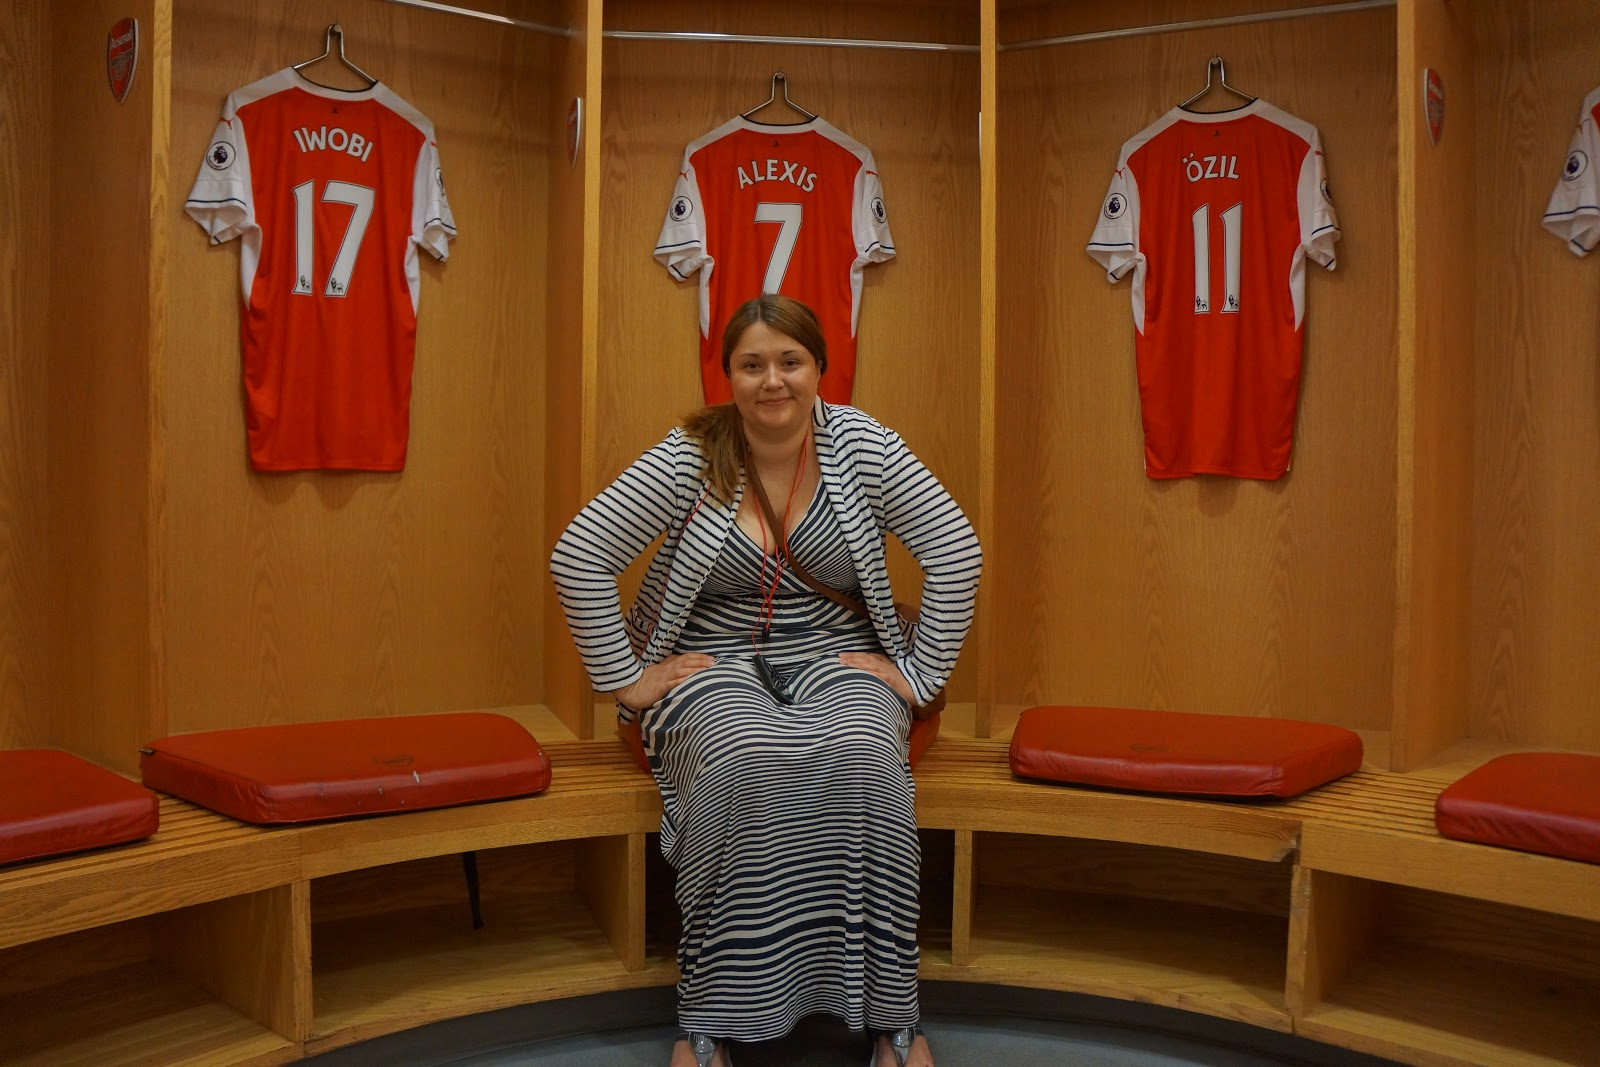 sitting in Arsenal Stadium changing room